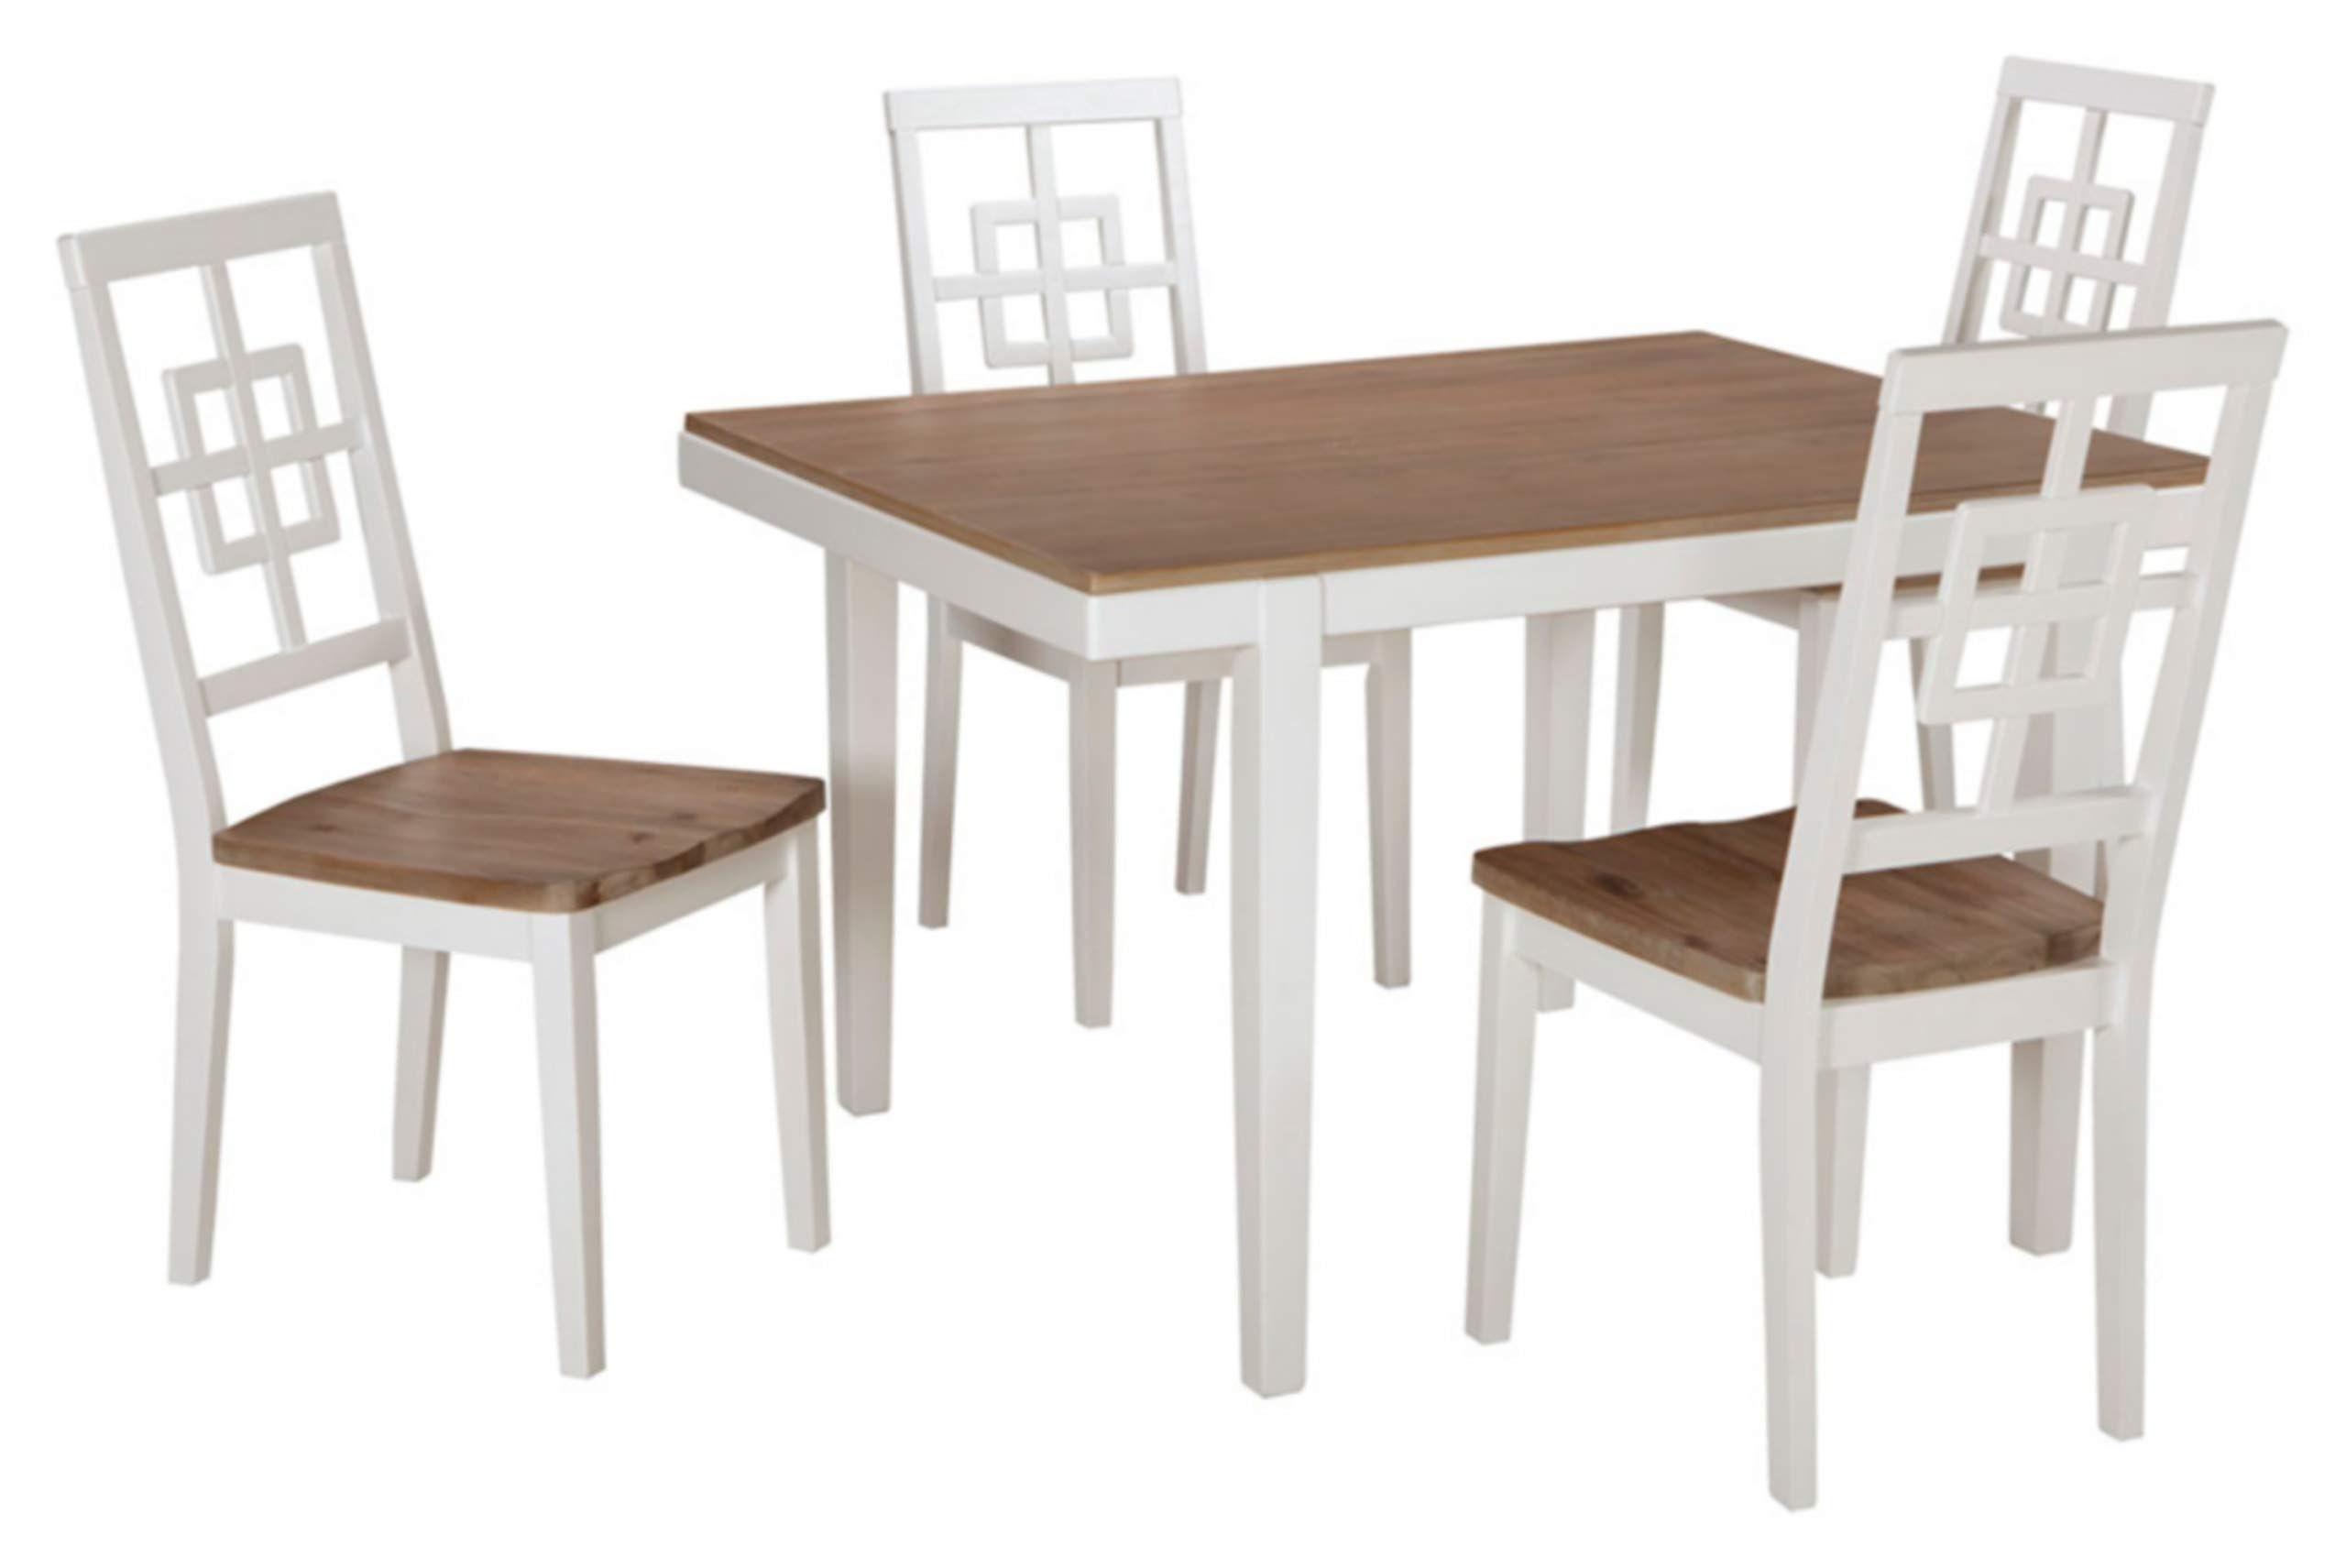 Signature Design by Ashley D298-225 Dining Table Set, Cimeran 5-Piece White by Signature Design by Ashley